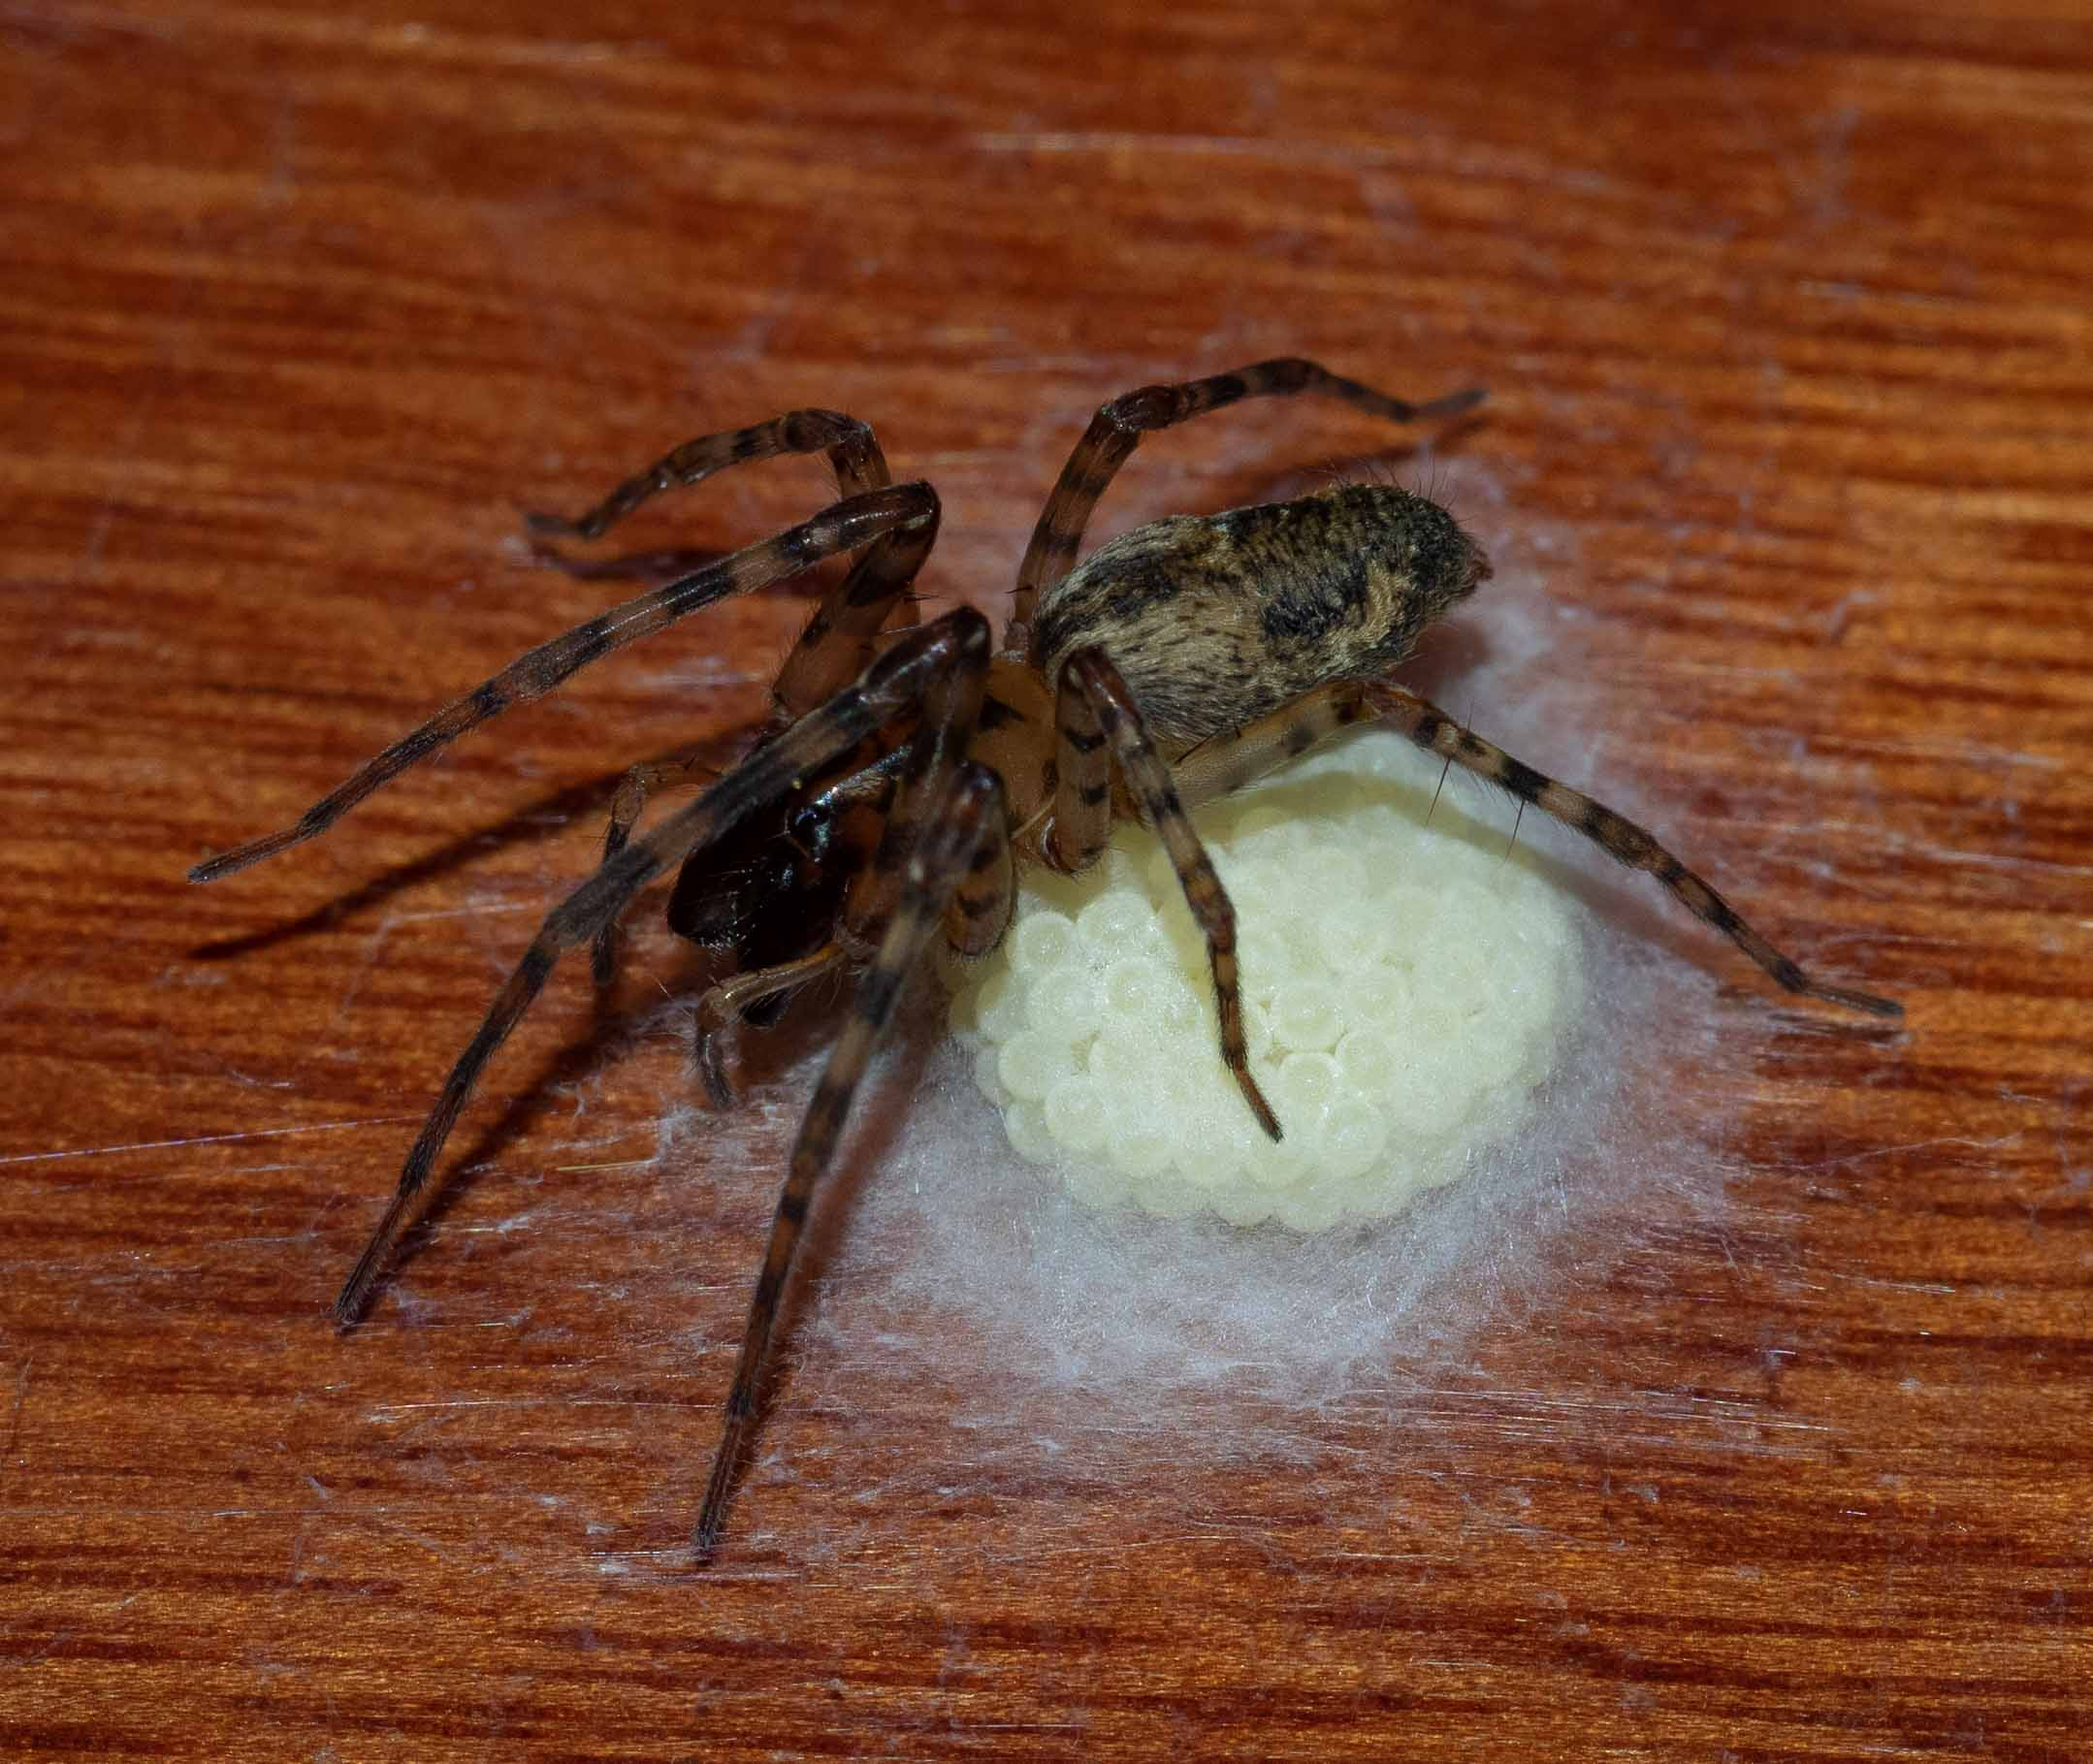 BREAKING NEWS!  Remember the fat-bodied, sluggish Sac Spider? Overnight on Saturday she laid a clutch of eggs in a beautiful silken egg case. Had it been just a few hours earlier she would have  really  been the star of the workshop! Family: Clubionidae